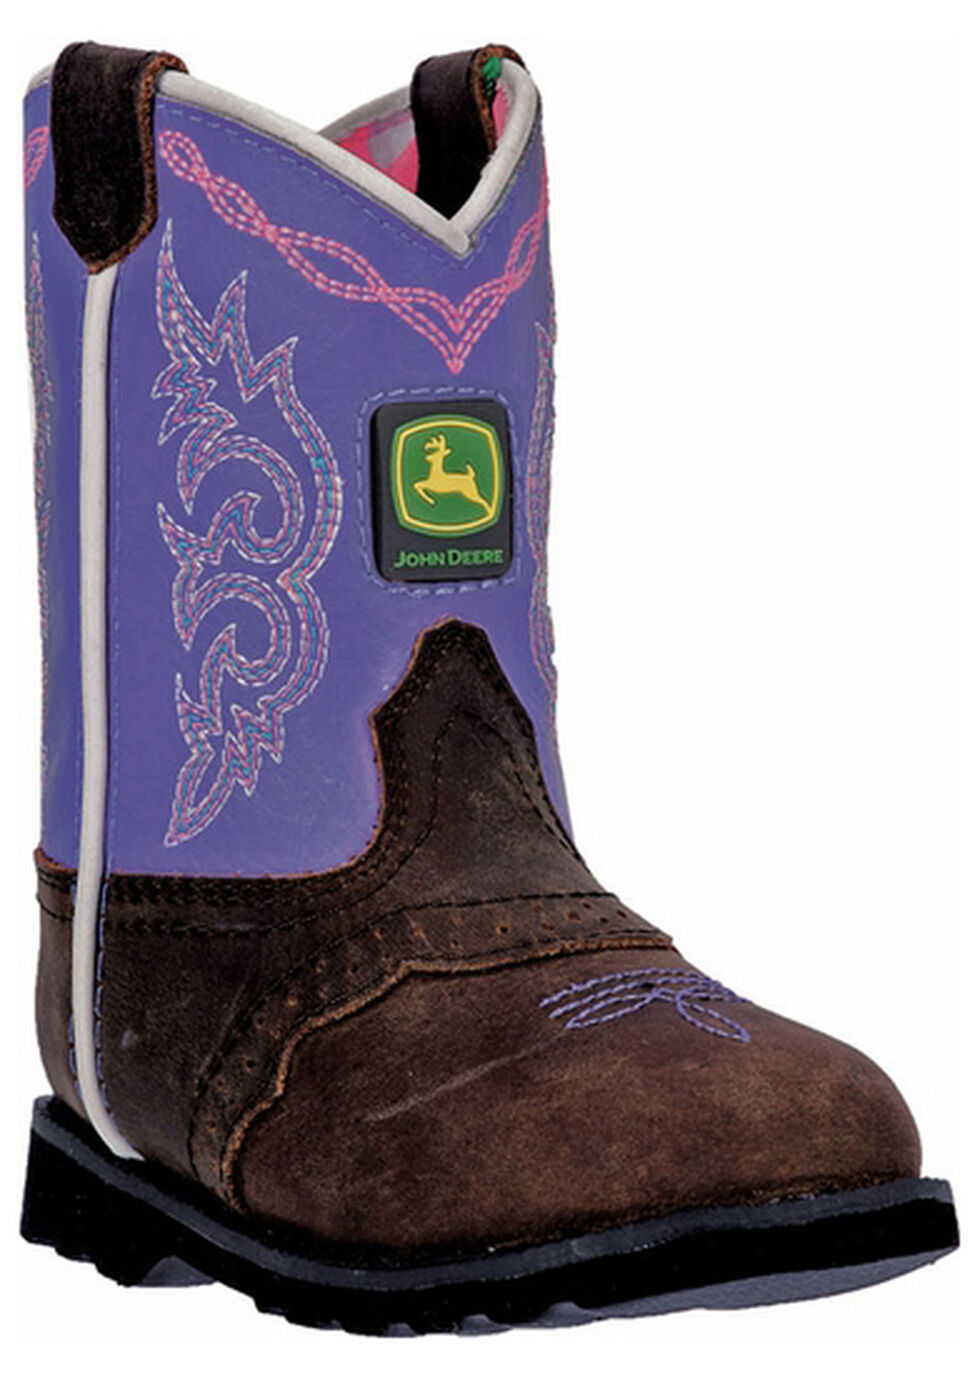 John Deere Toddler Girls' Johnny Popper Violet Western Boots - Square Toe, Brown, hi-res